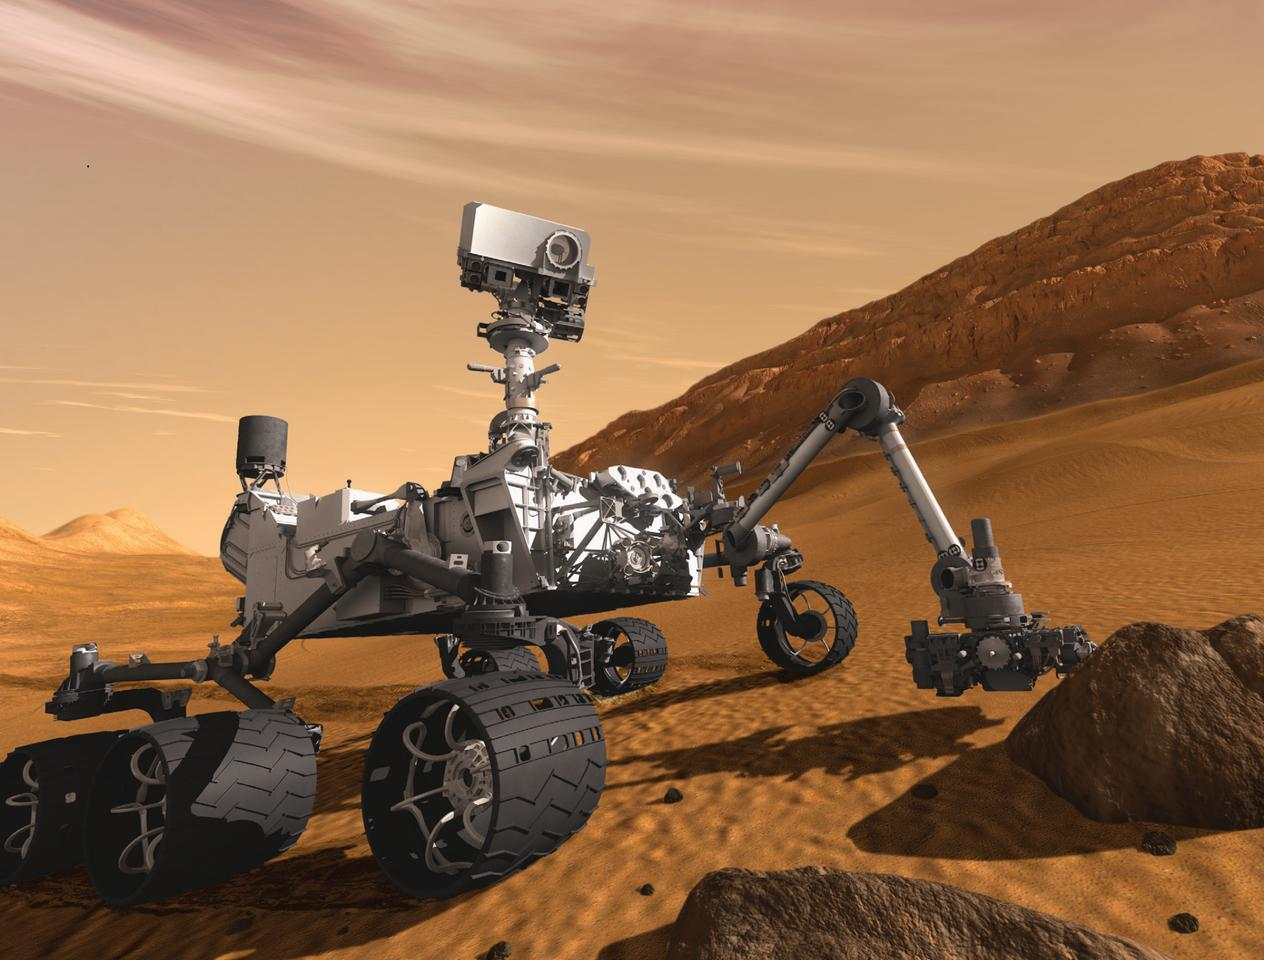 NASA's Mars lander Curiosity has landed safely on Mars (Image: NASA)